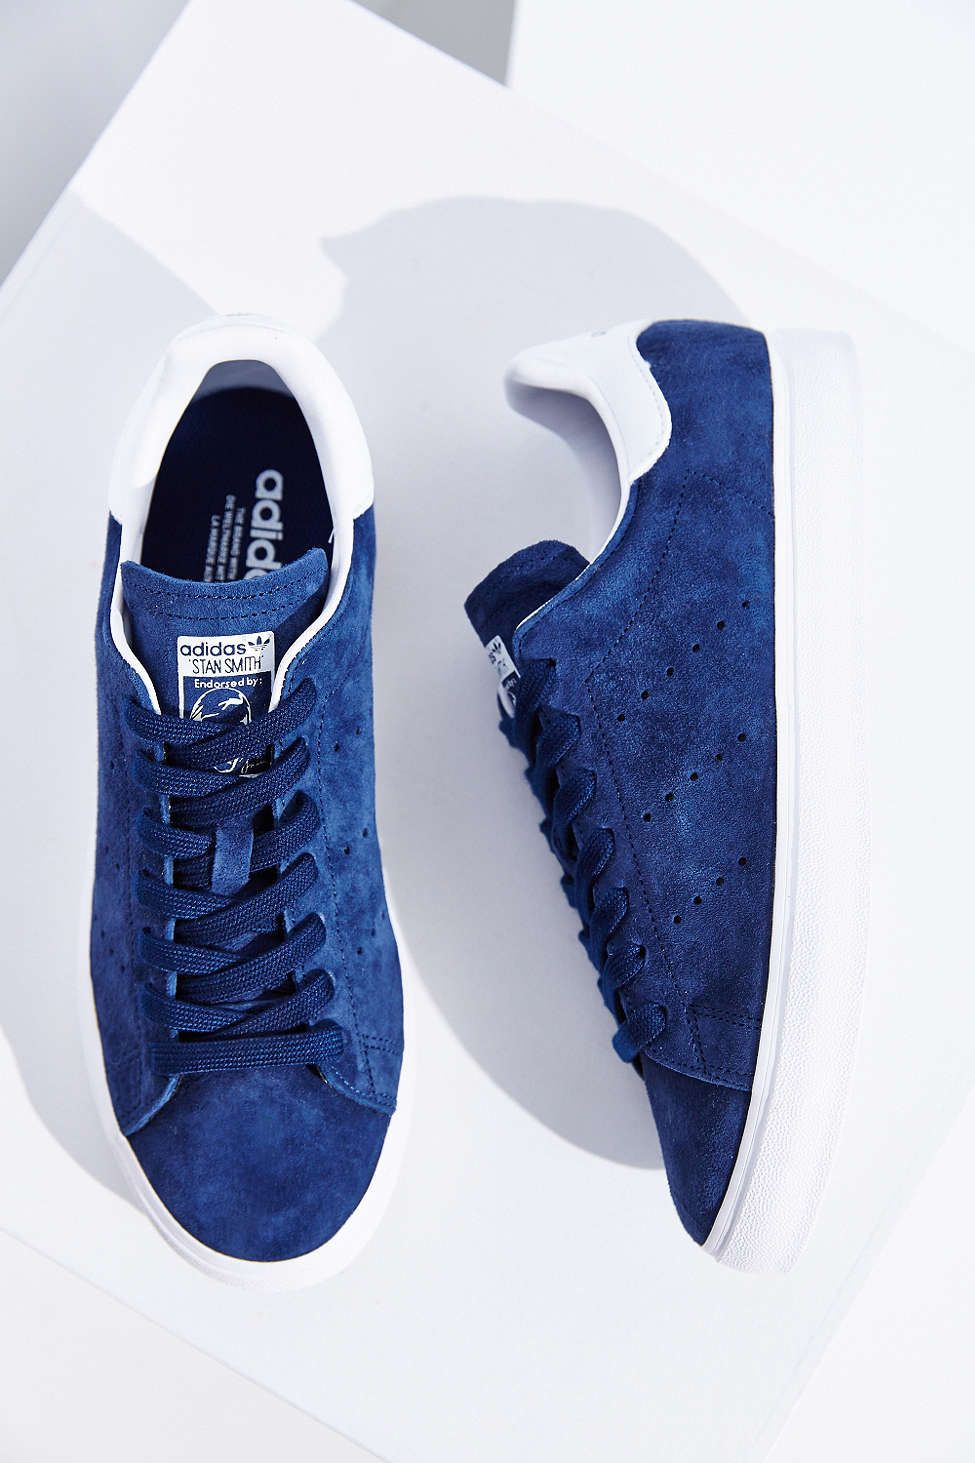 uk availability e86bd 187ca love it in blue suede...adidas originals stan smith | Kicks ...